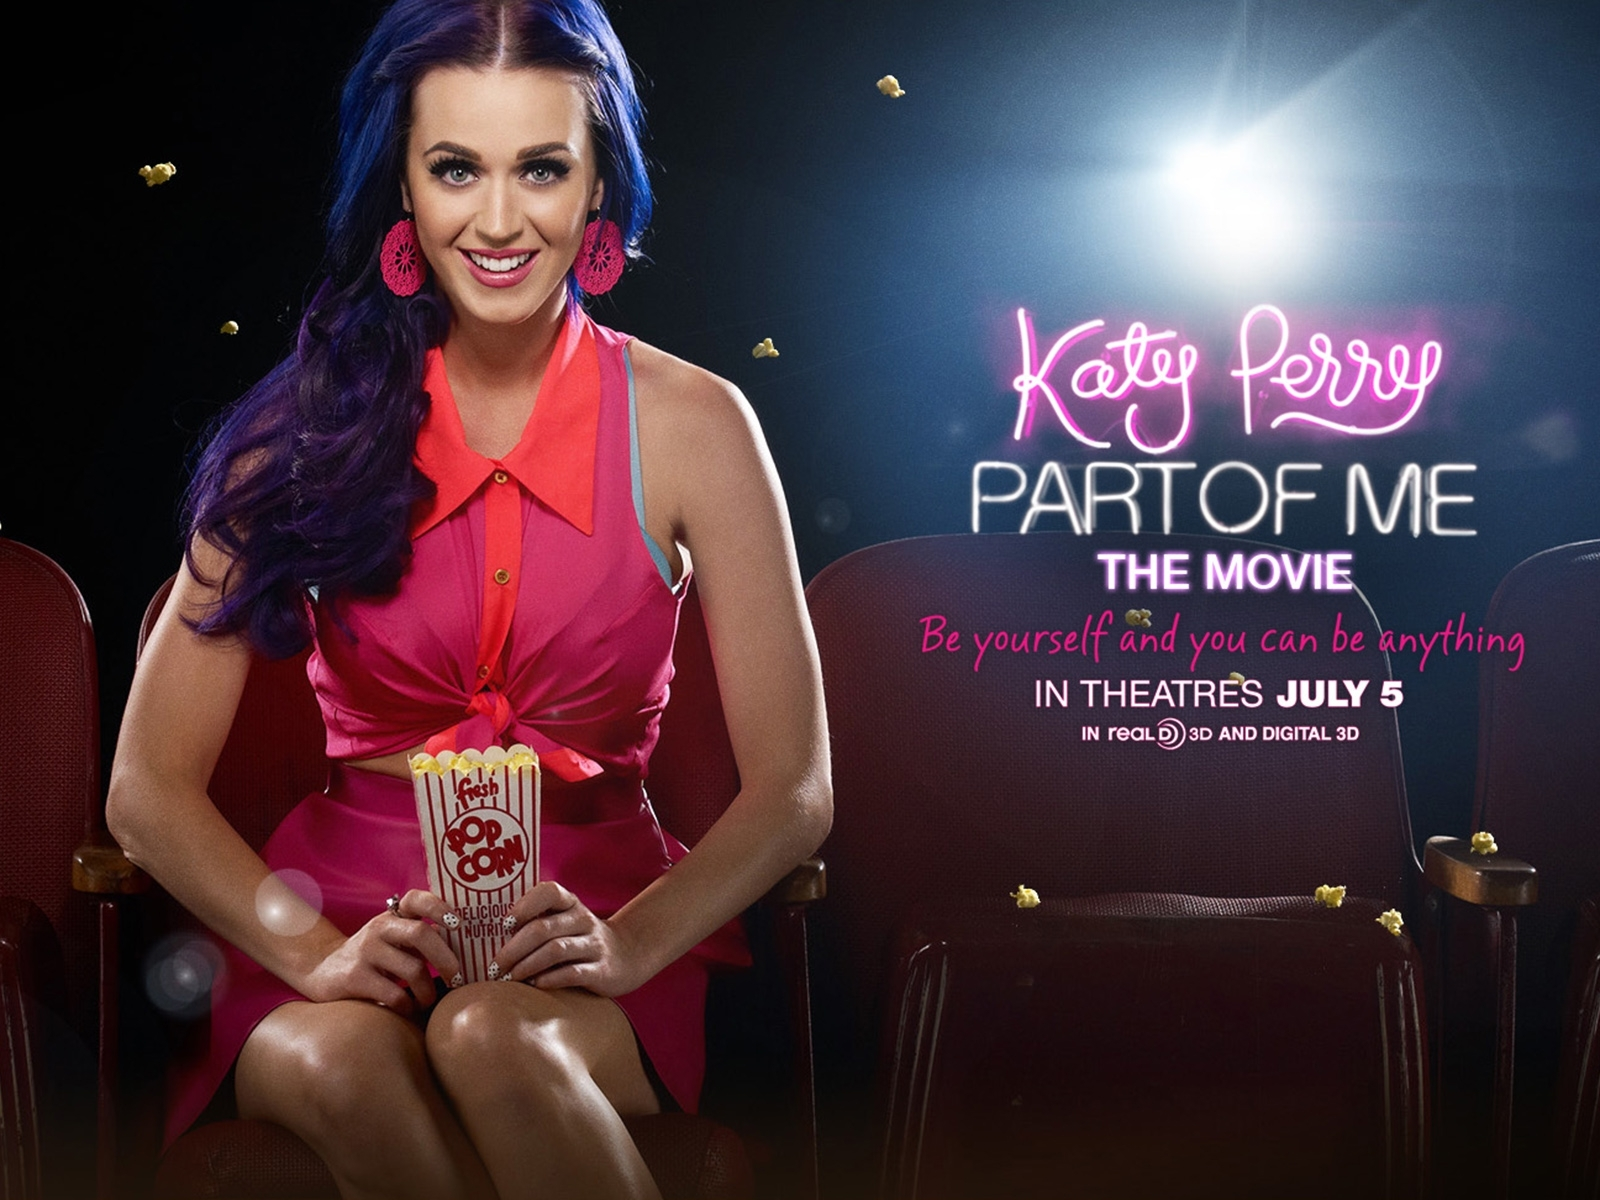 http://2.bp.blogspot.com/-o8P6nboWDvU/UA4D8MPIkVI/AAAAAAAAAnI/G6dZHHBDZJ0/s1600/katy-perry-part-of-me-movie-2012-wallpaper-for-1600x1200-3-360.jpg